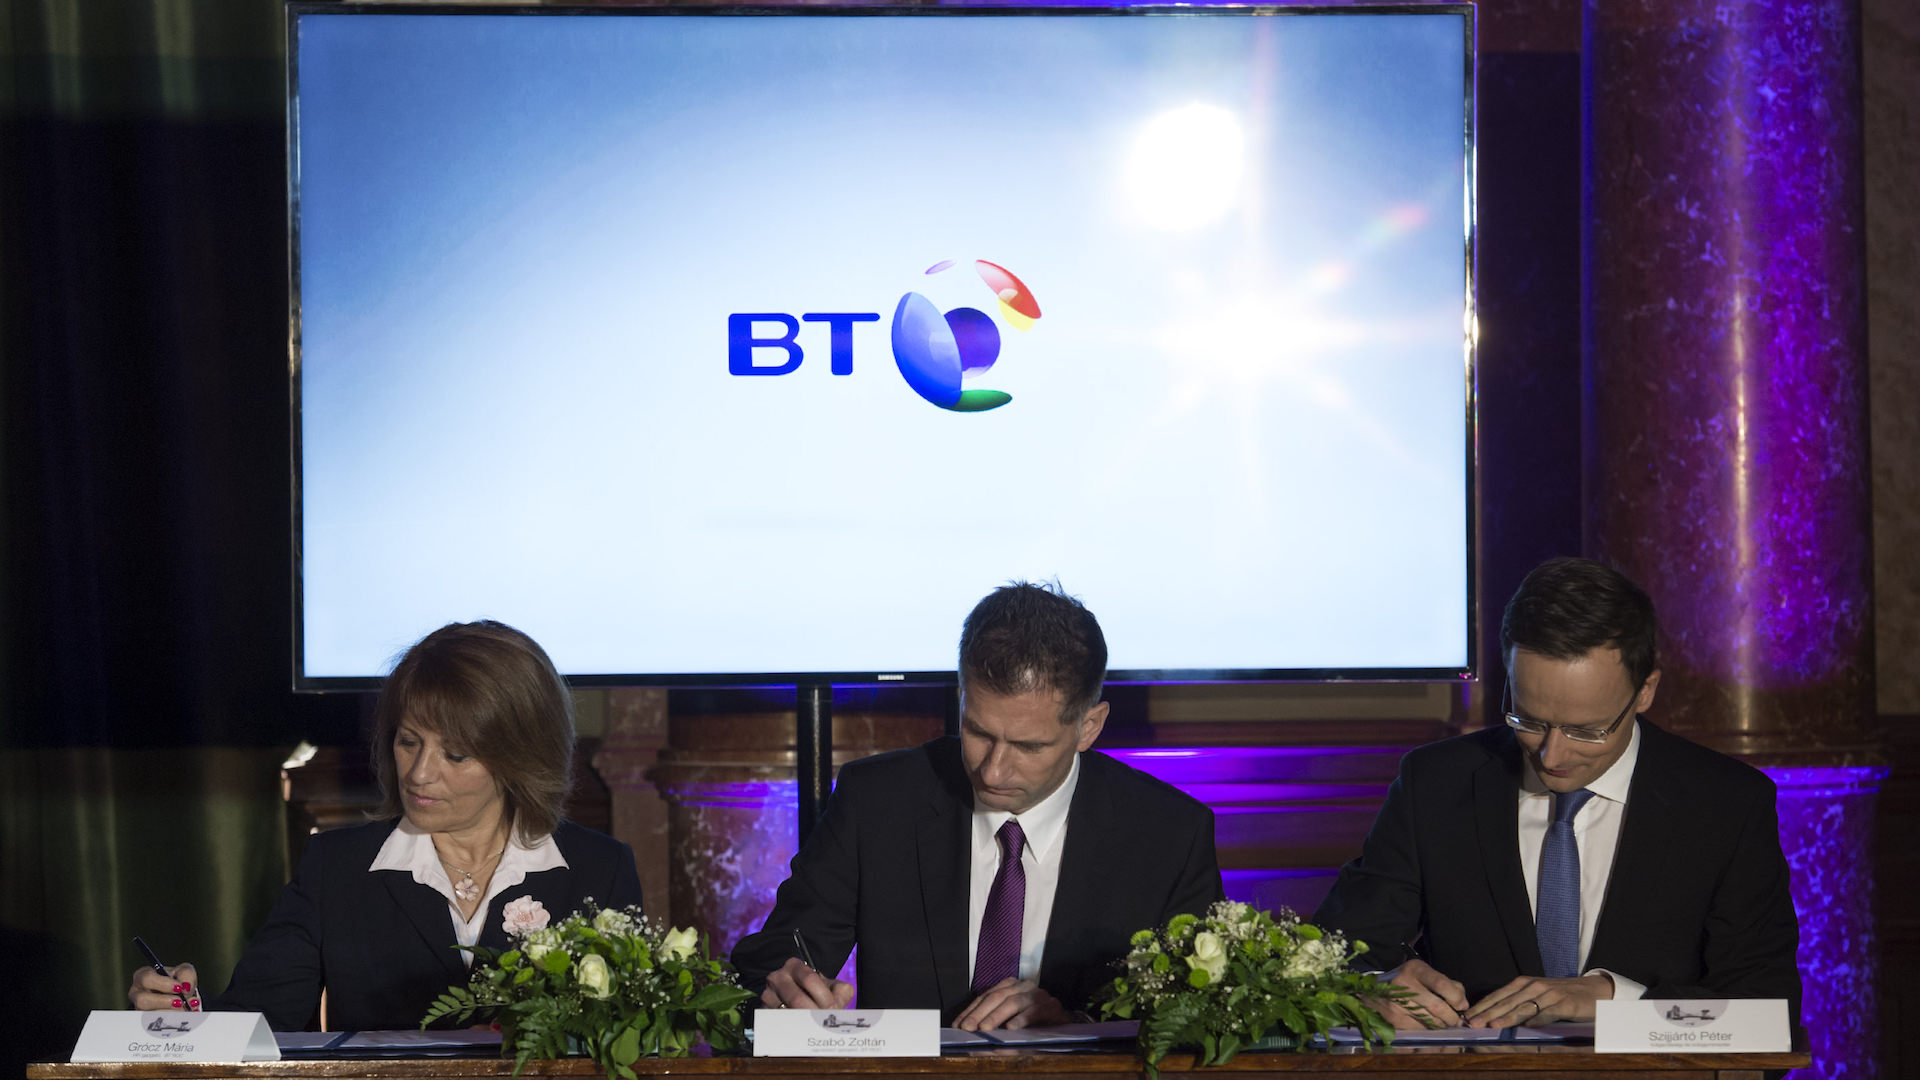 BT is the most recent strategic partner of the Hungarian Government